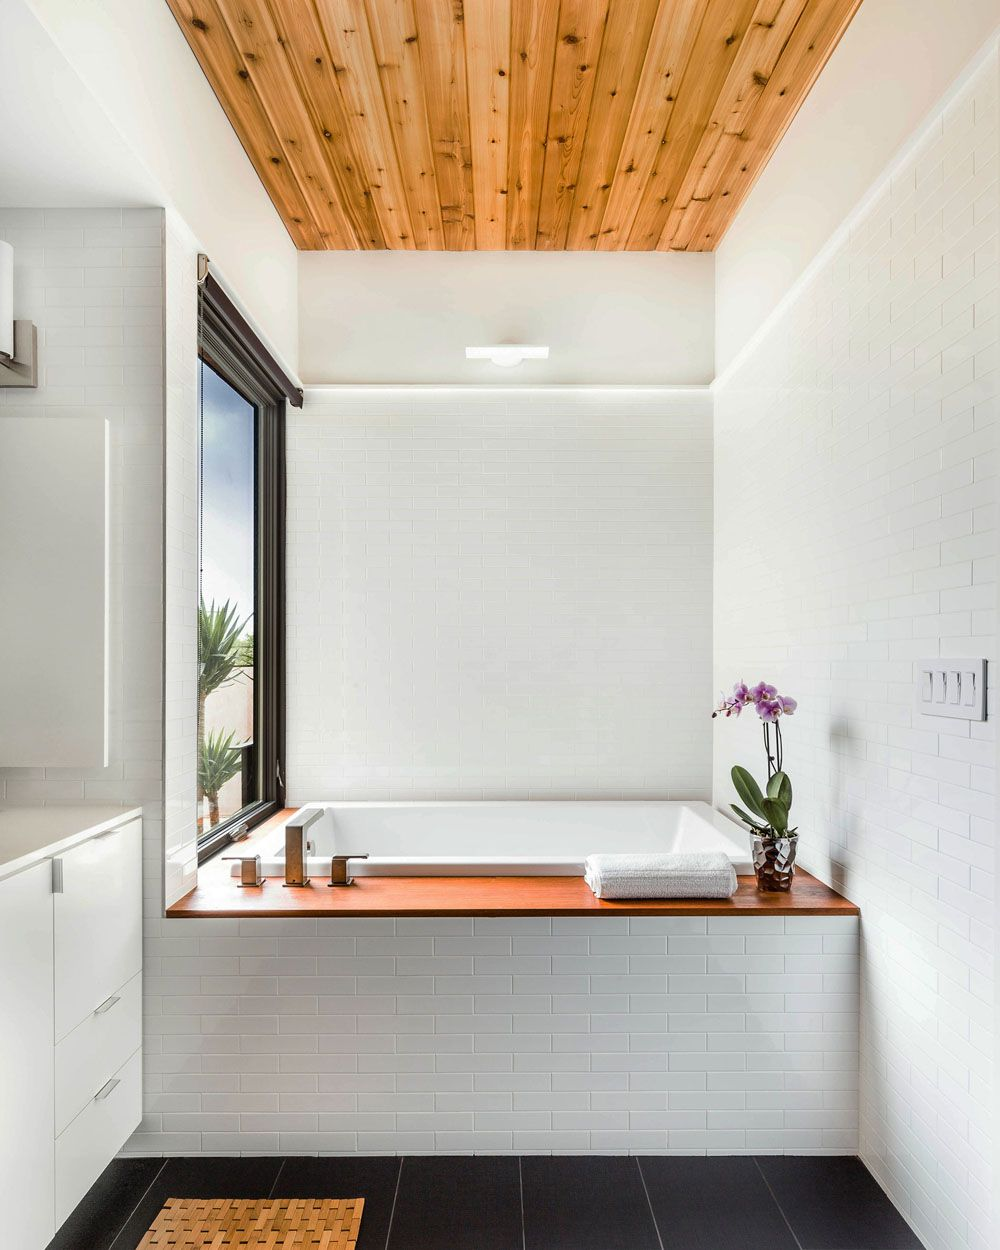 cold hard walls and floor in bath, warm wood ceiling | Houses ...